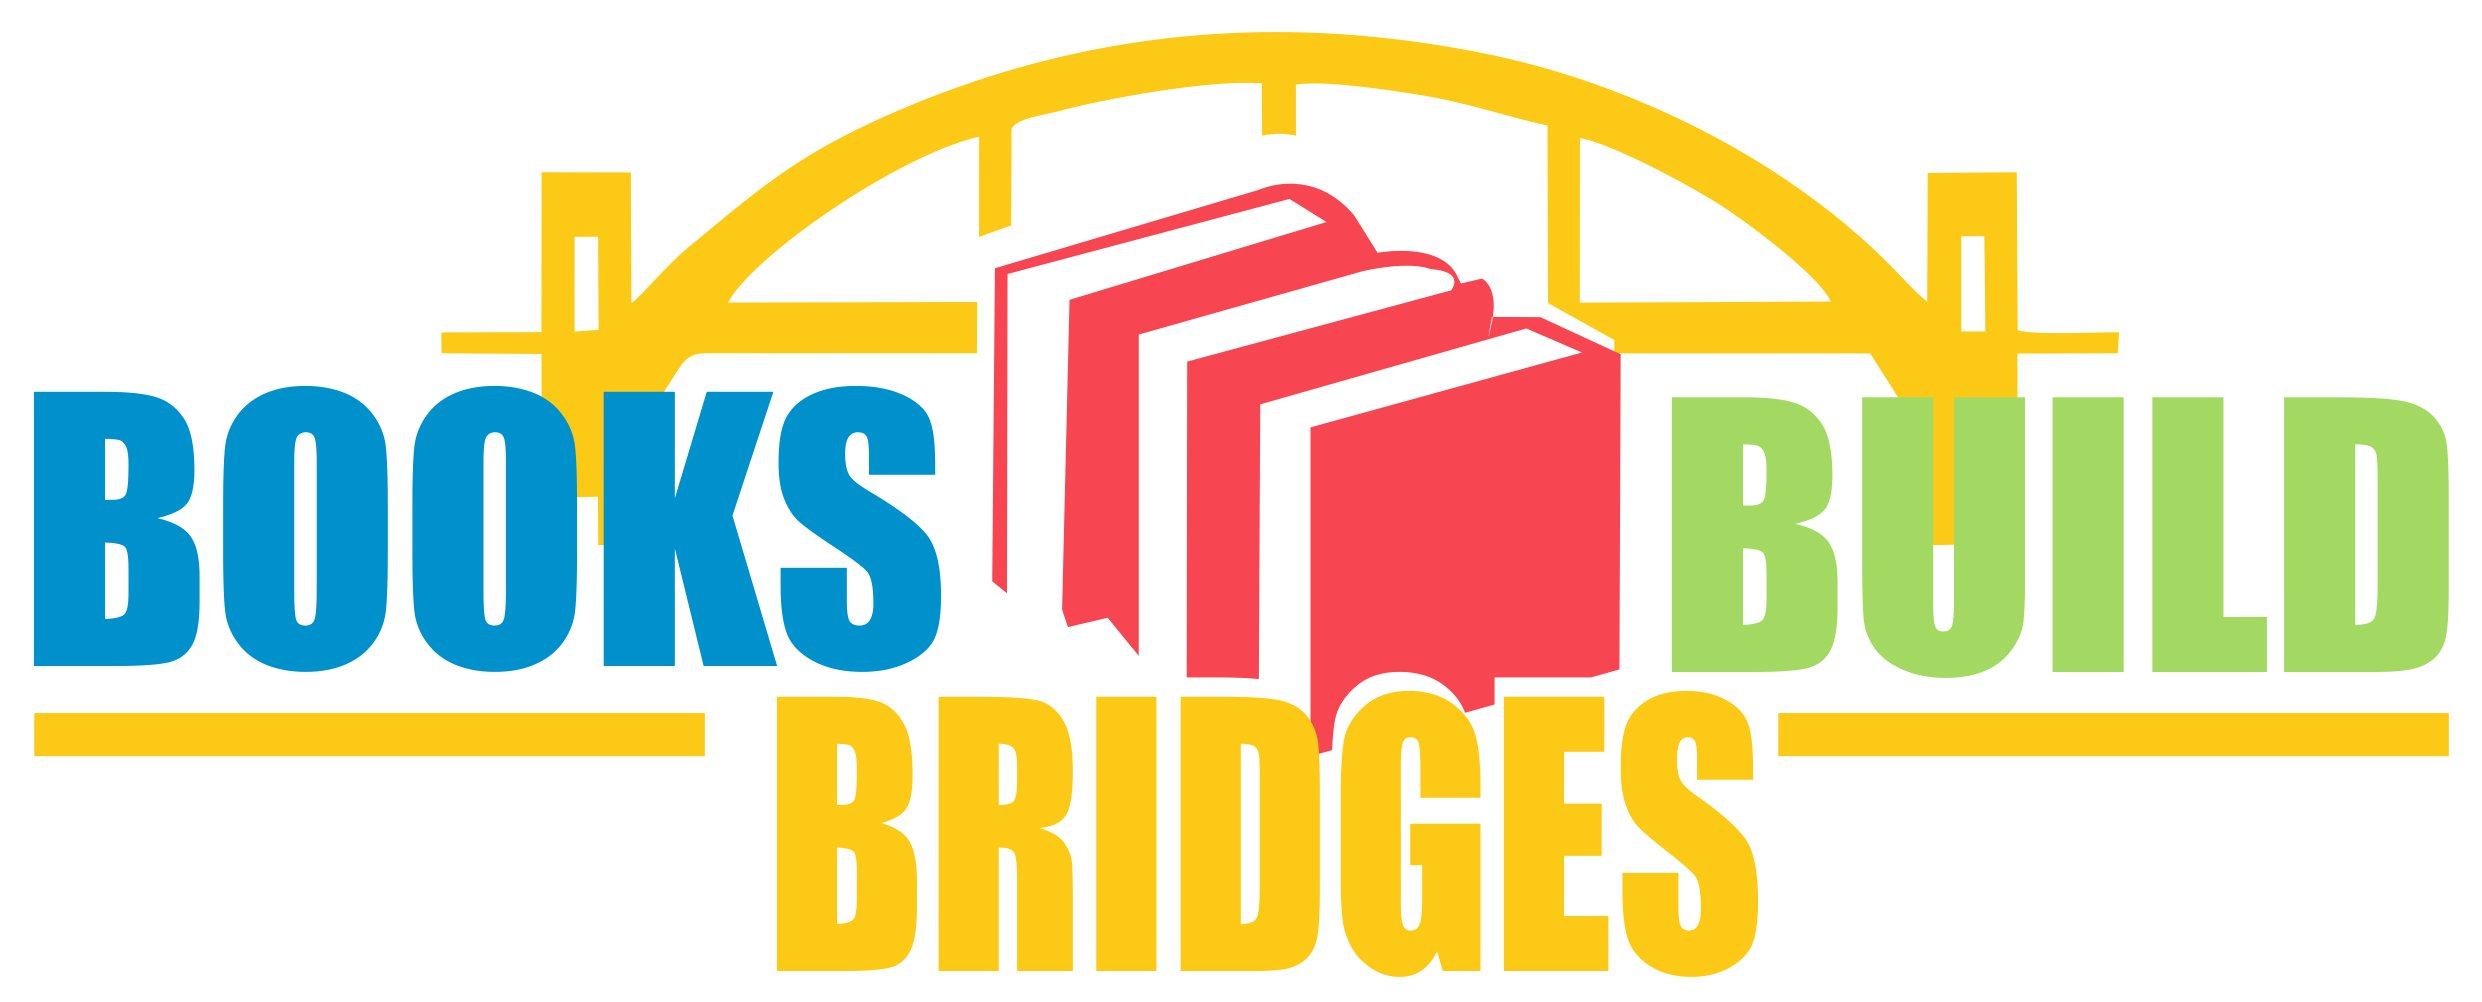 Books Build Bridges